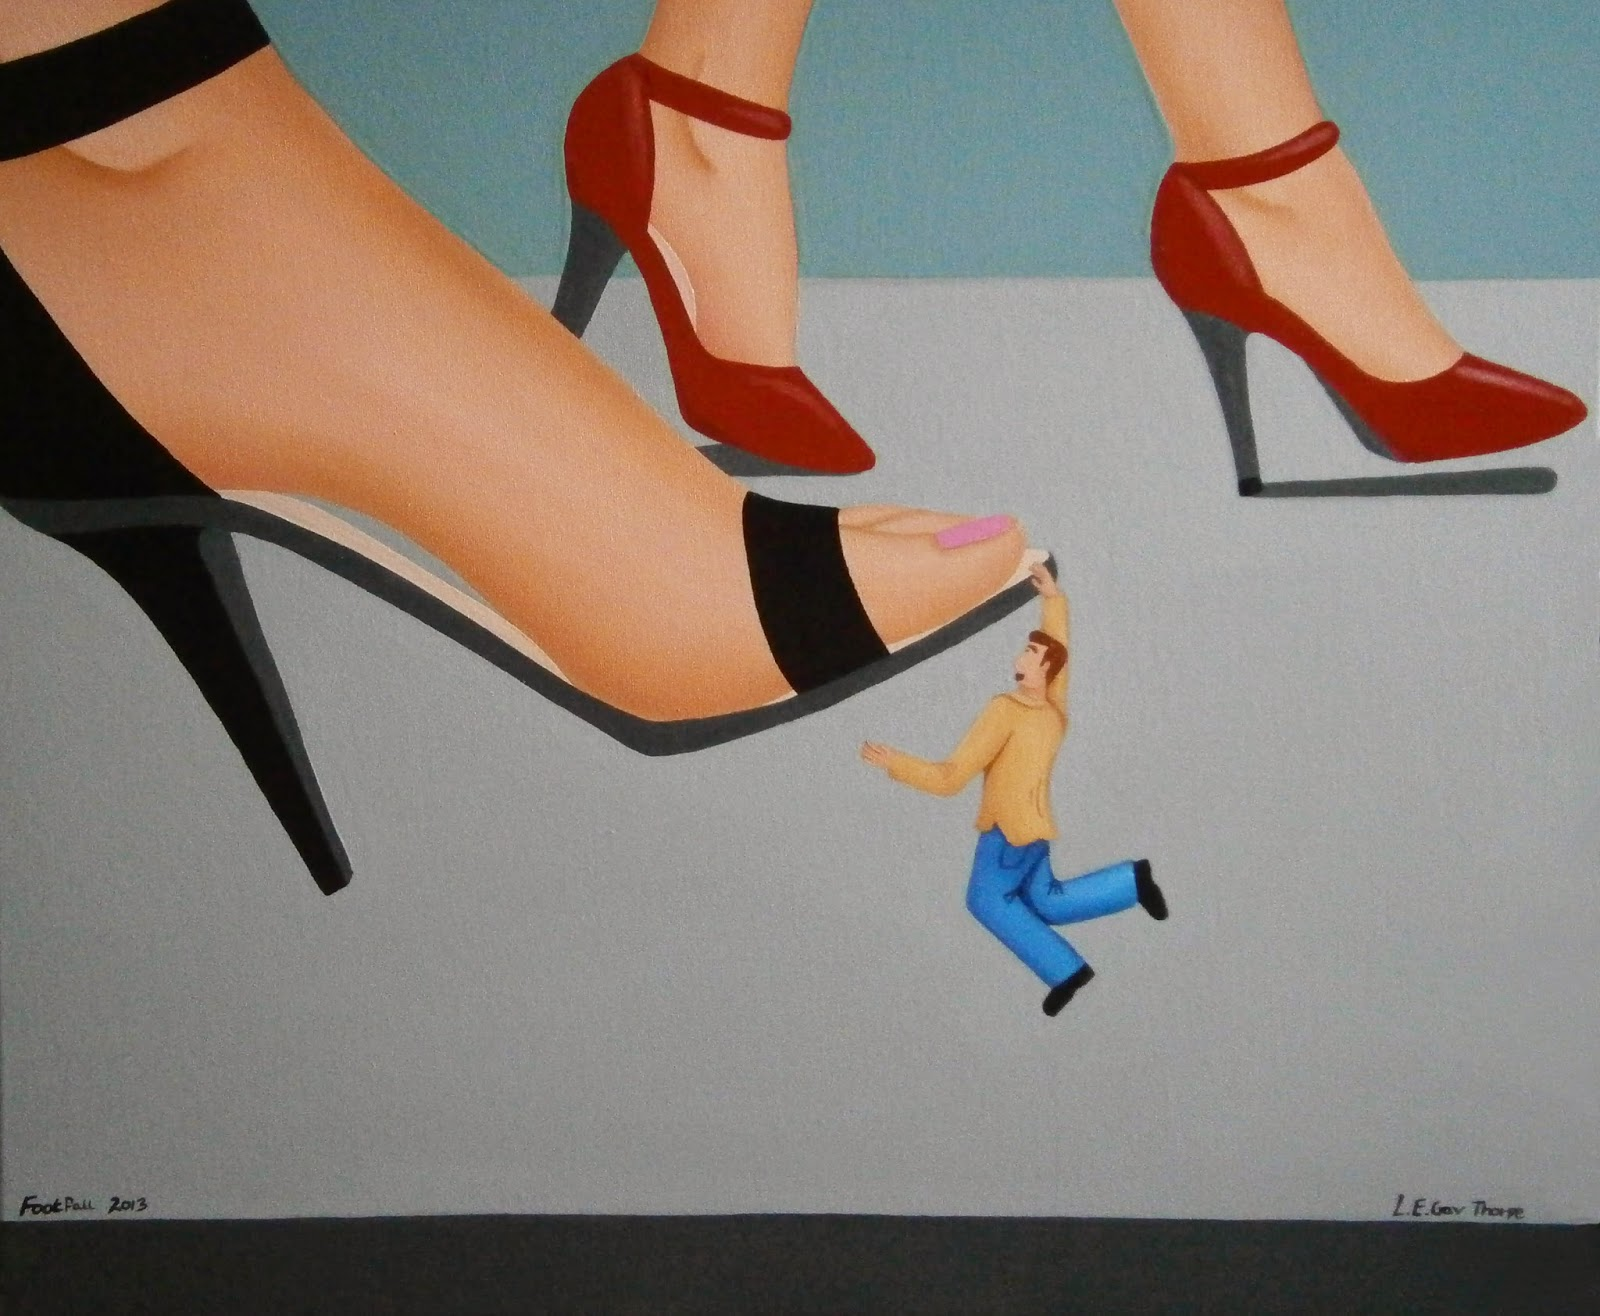 A shrunken man hanging off of the front of a woman's sandal